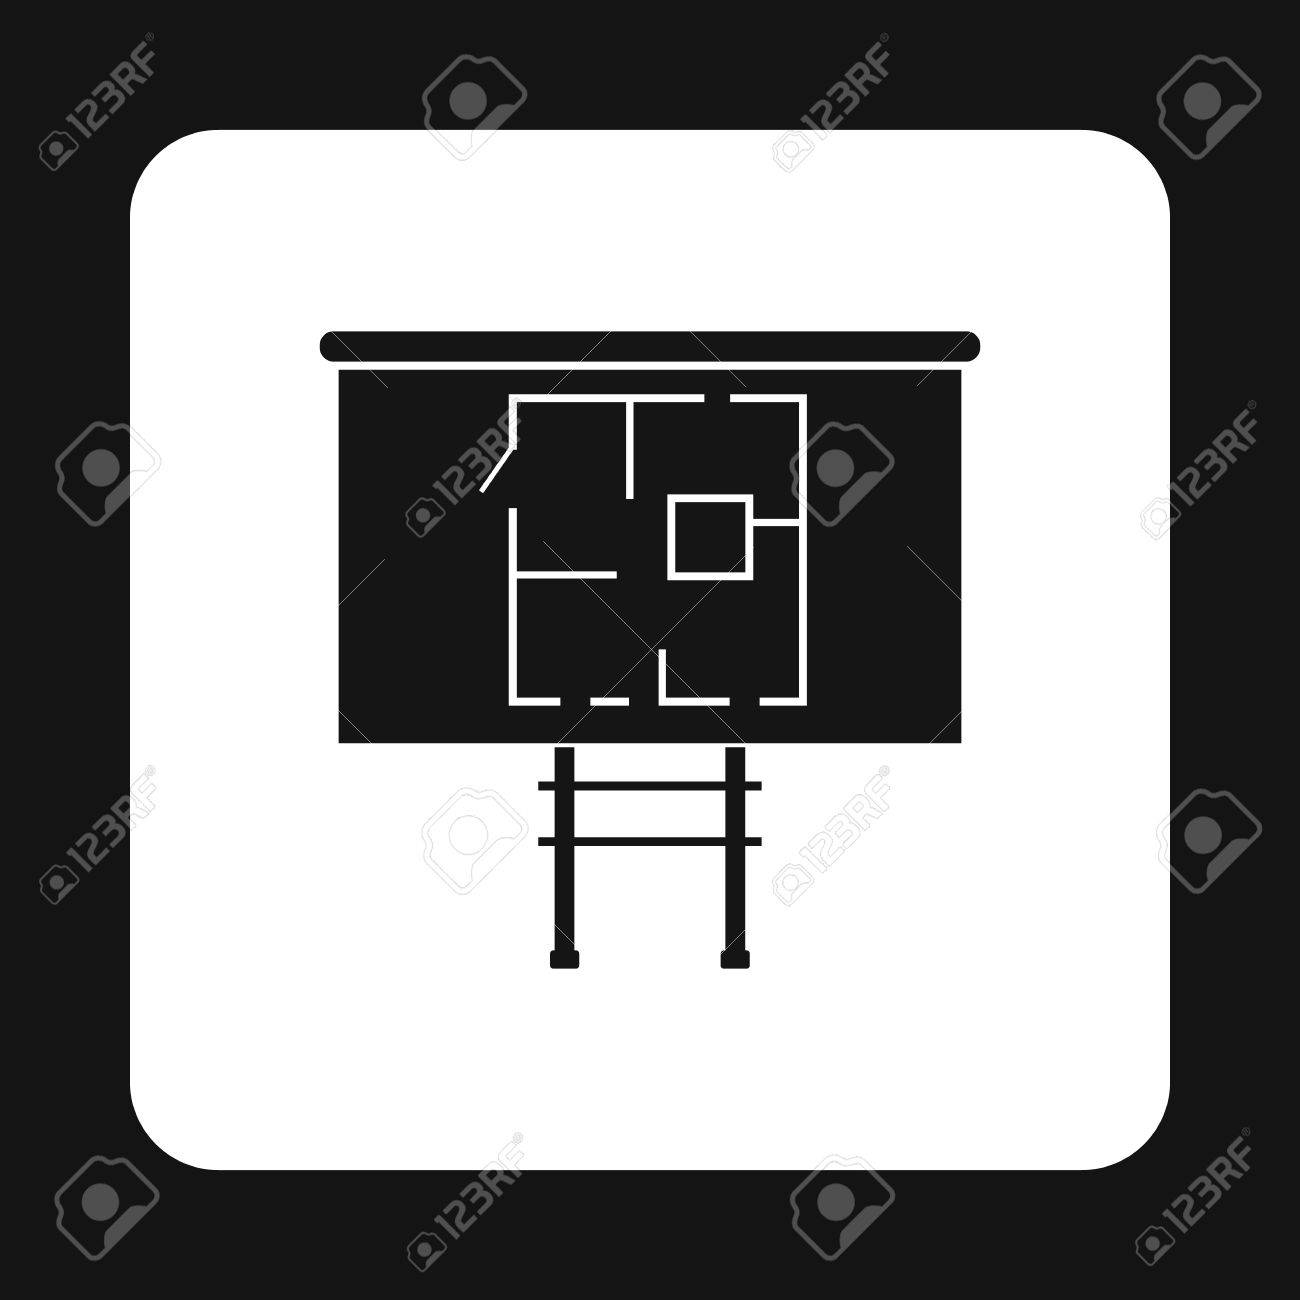 Simple table free other icons - Table Project Of Home Icon In Simple Style Isolated On White Background Drawing Symbol Stock